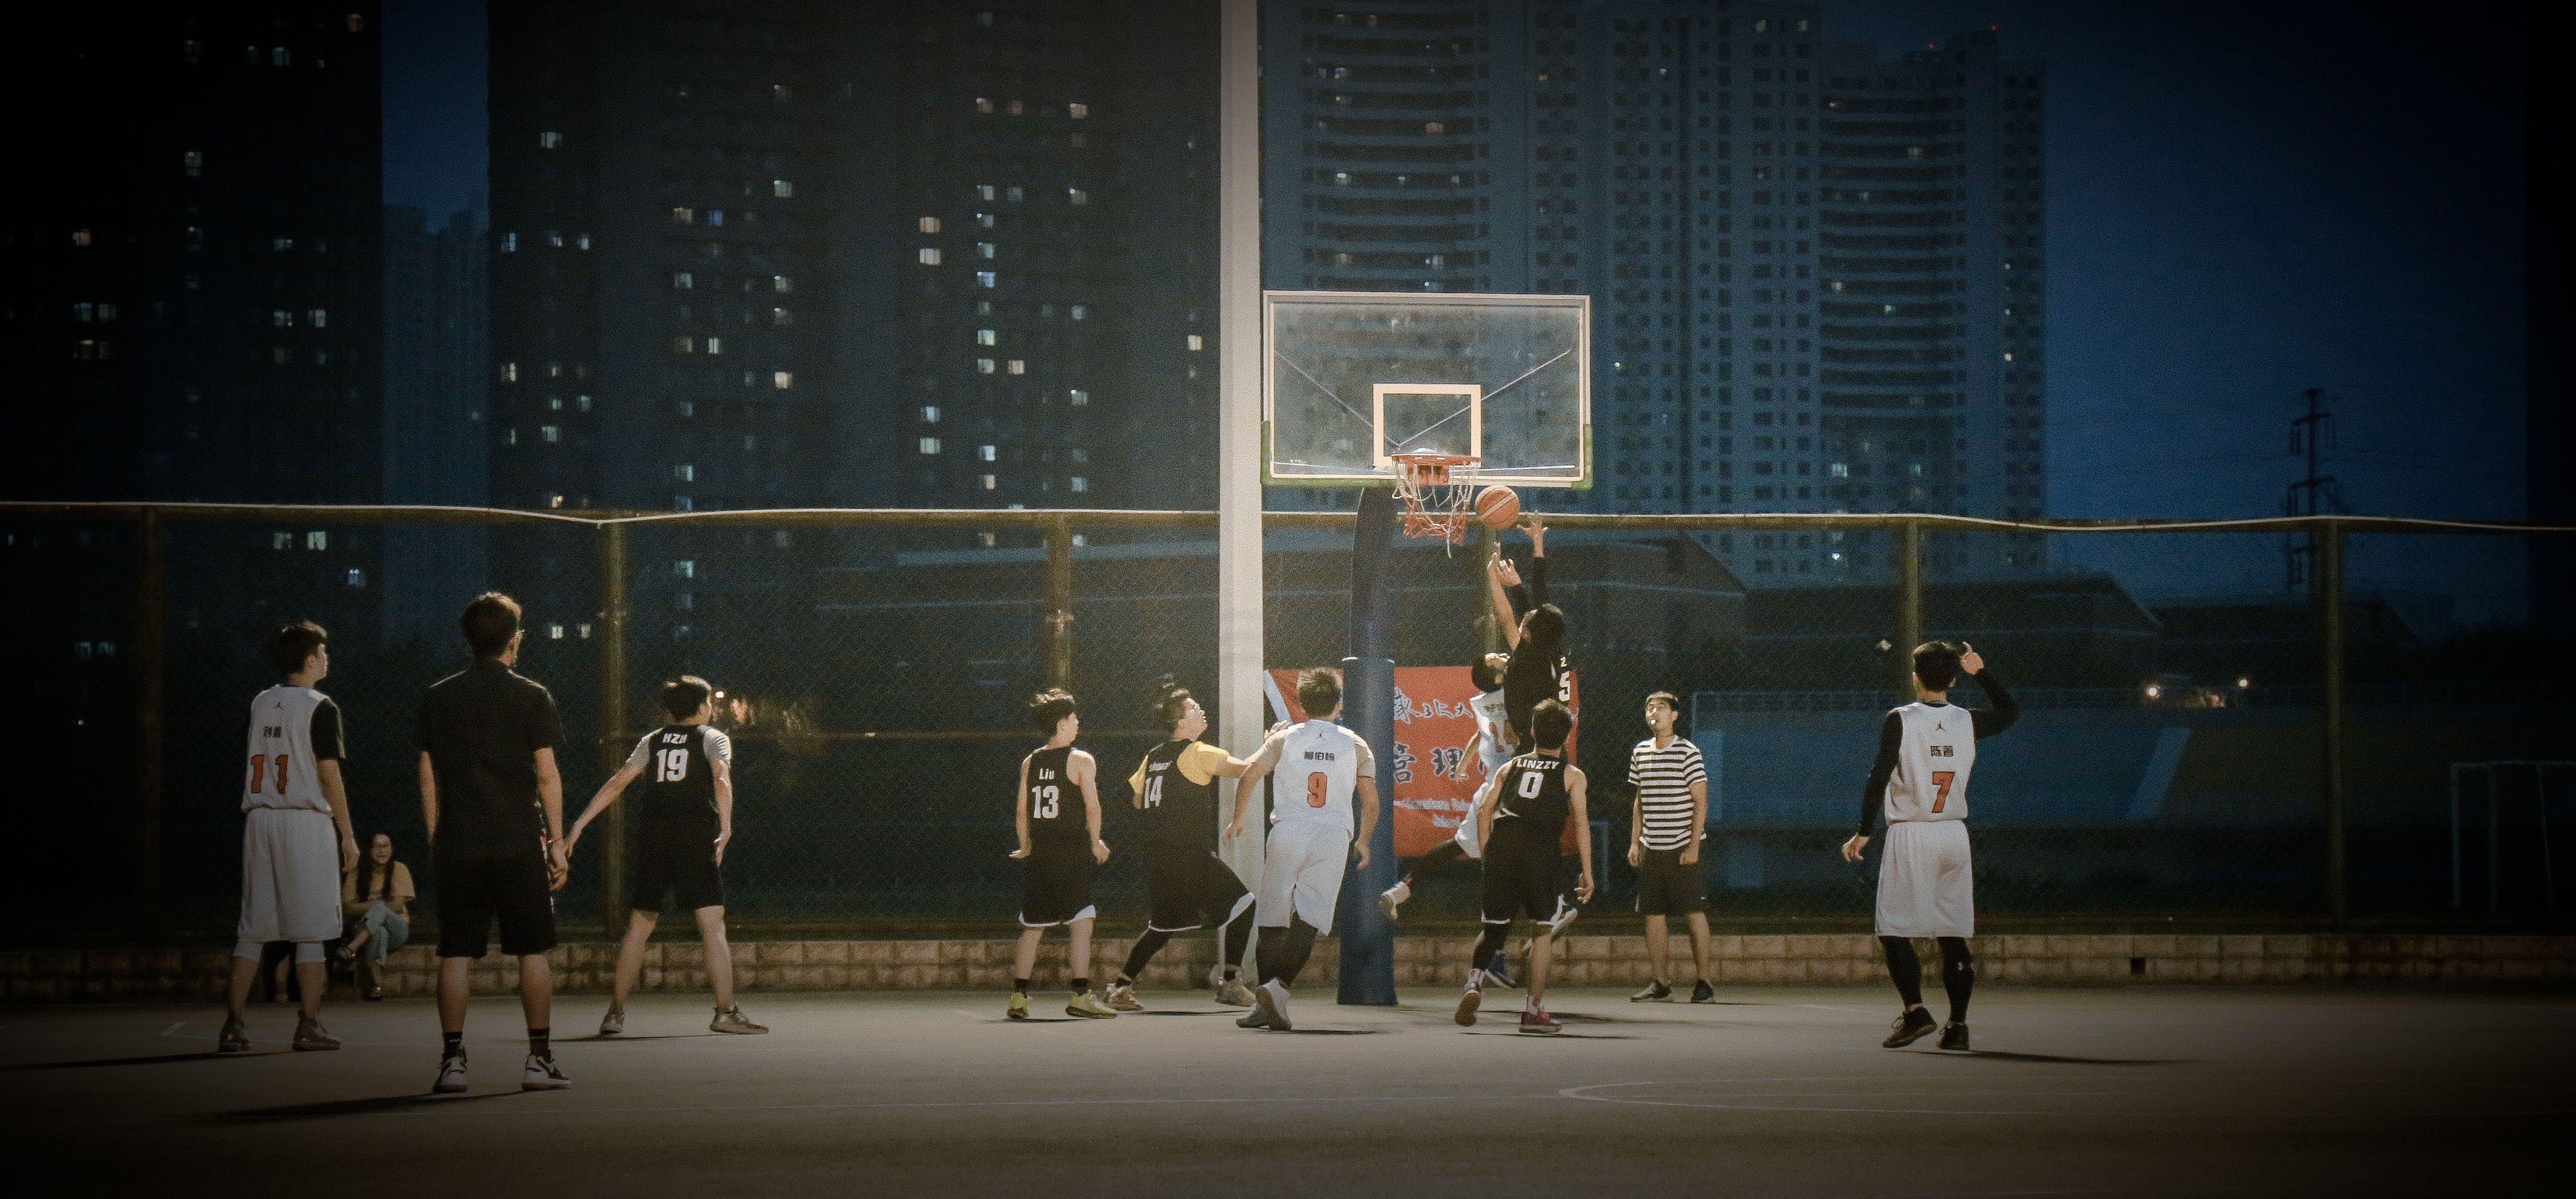 group of men playing basketball during nighttime